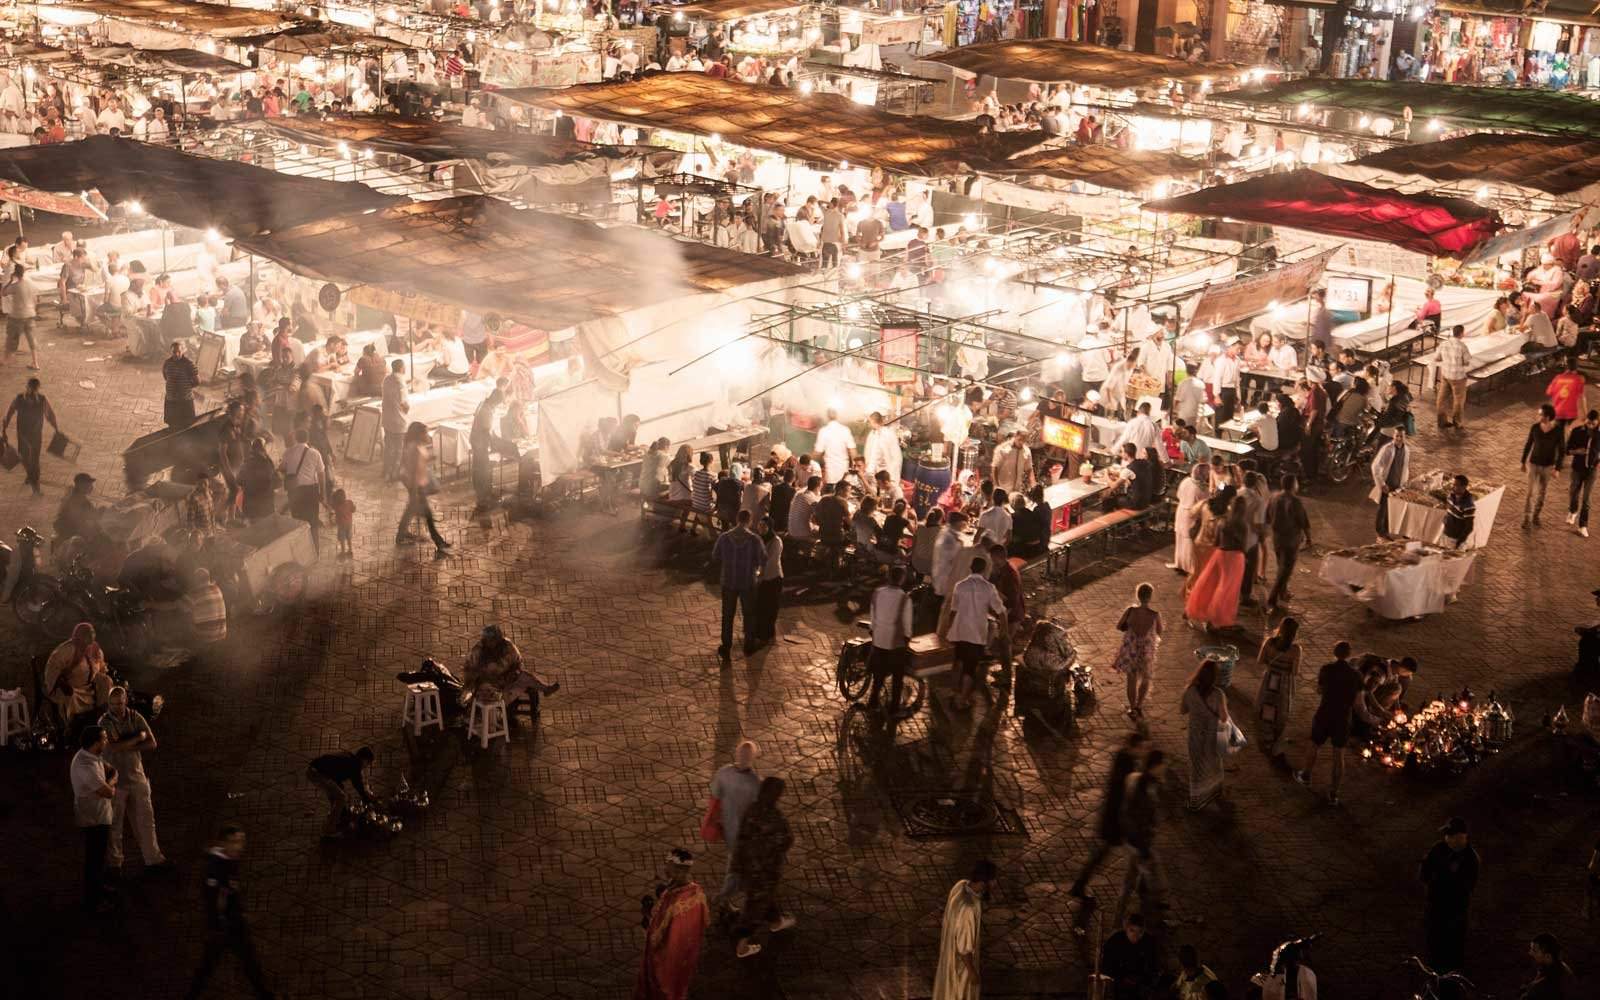 View of crowded market stalls at night, Jamaa el Fna Square, Marrakech, Morocco